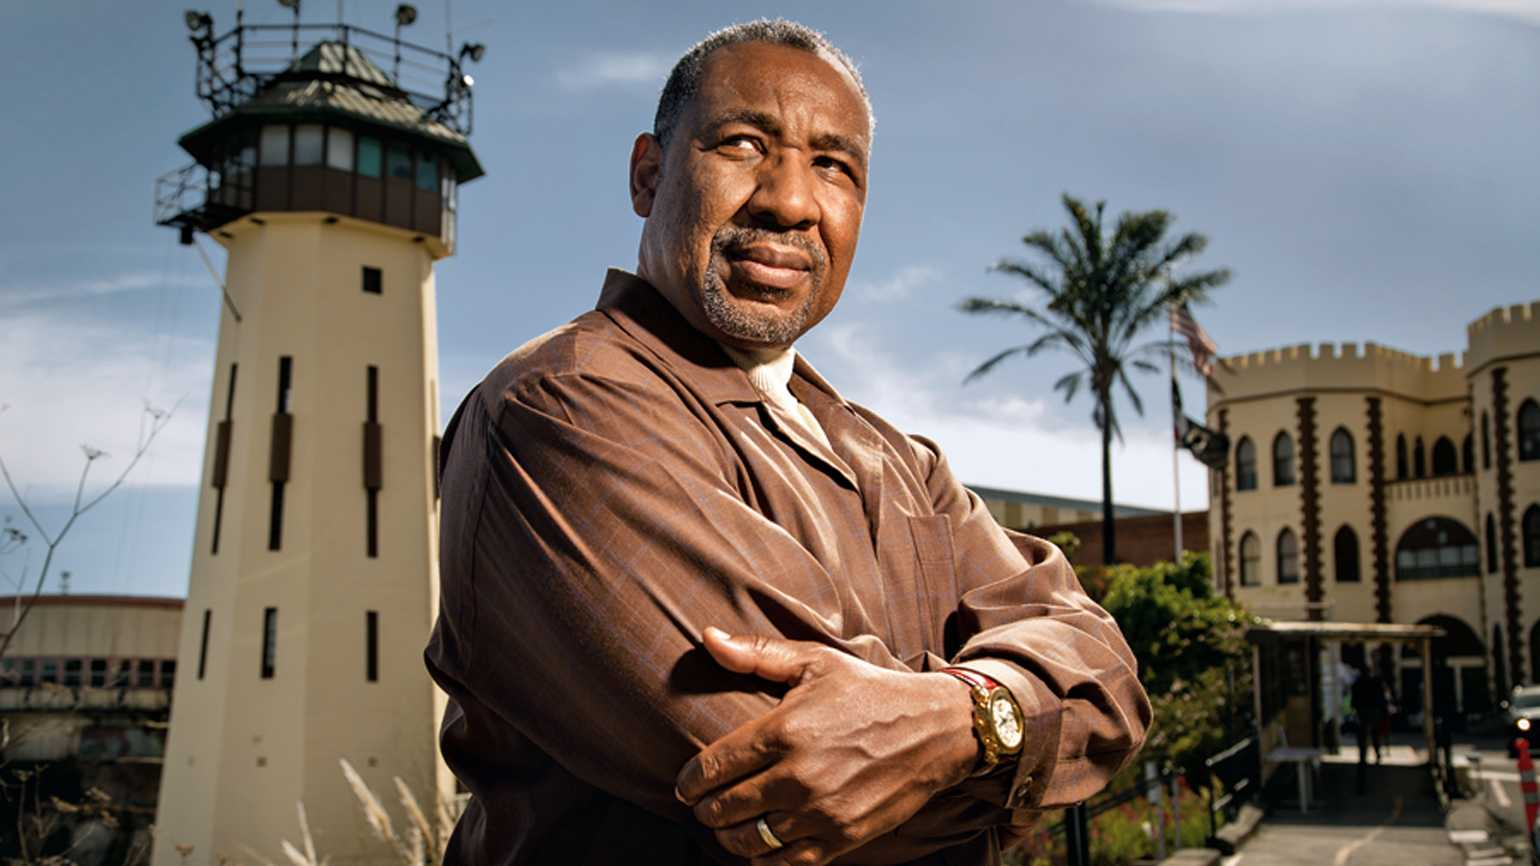 Earl Smith brought healing and forgiveness to prison at San Quentin.